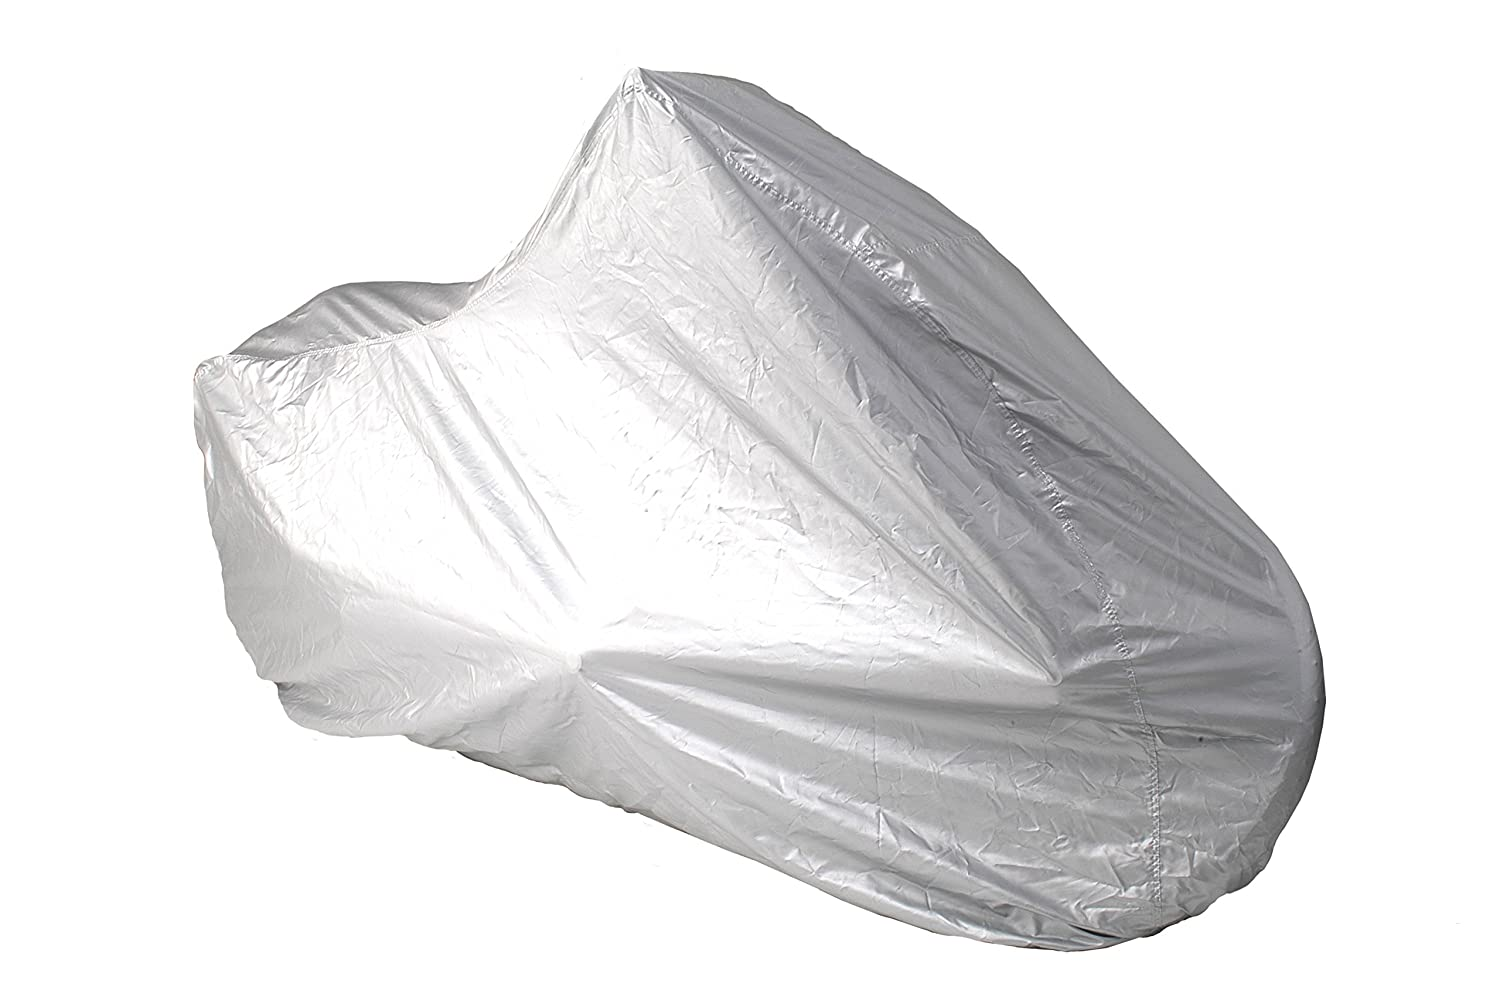 Coverking//MODA UMXFDCRE62 Universal Fit Full All-Weather Waterproof Dress Motorcycle Cover Silverguard